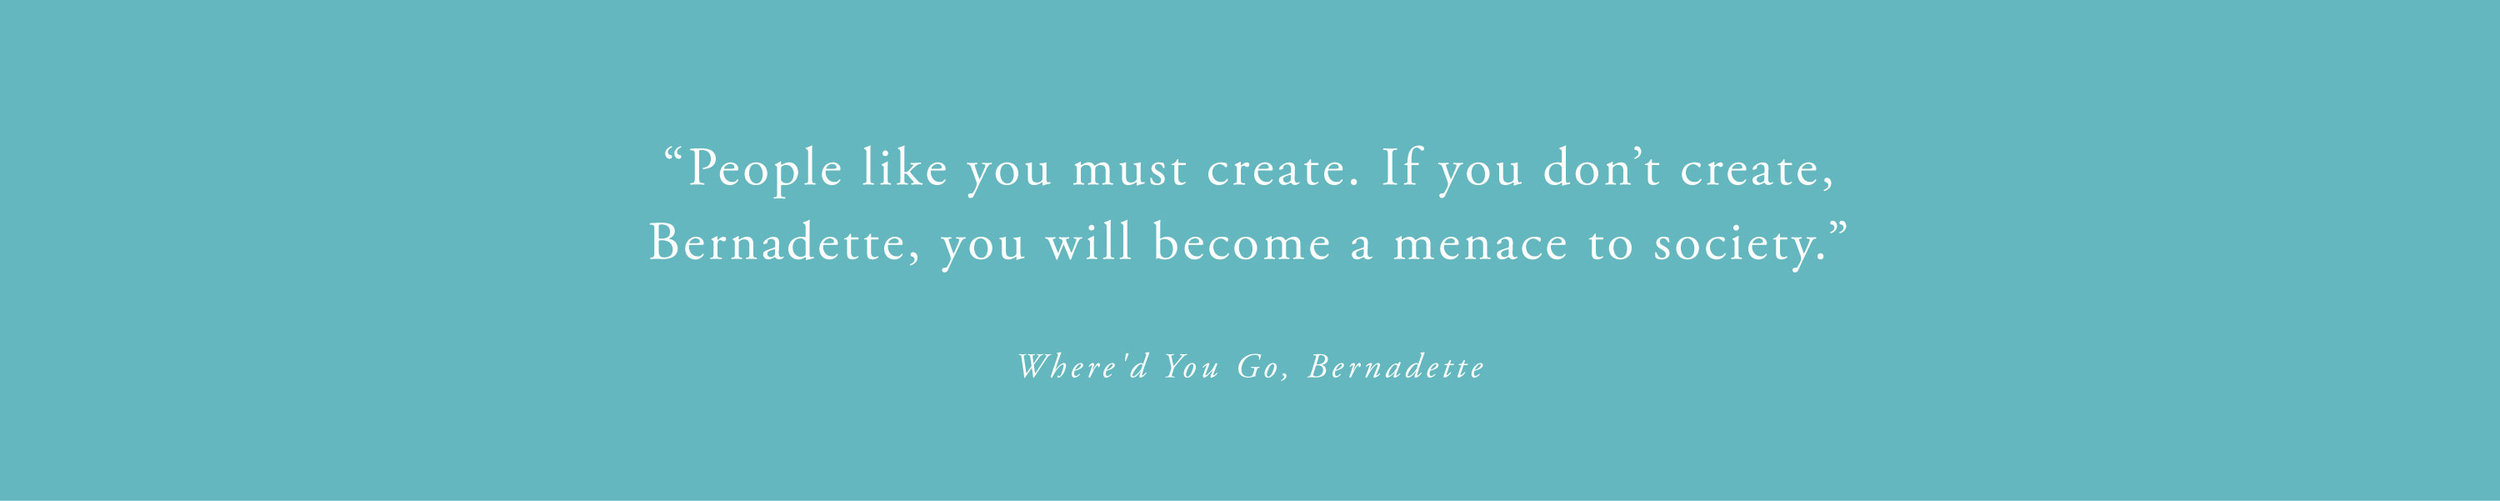 BarneyDesign_quote-from-Where'd-you-go-Bernadette.jpg